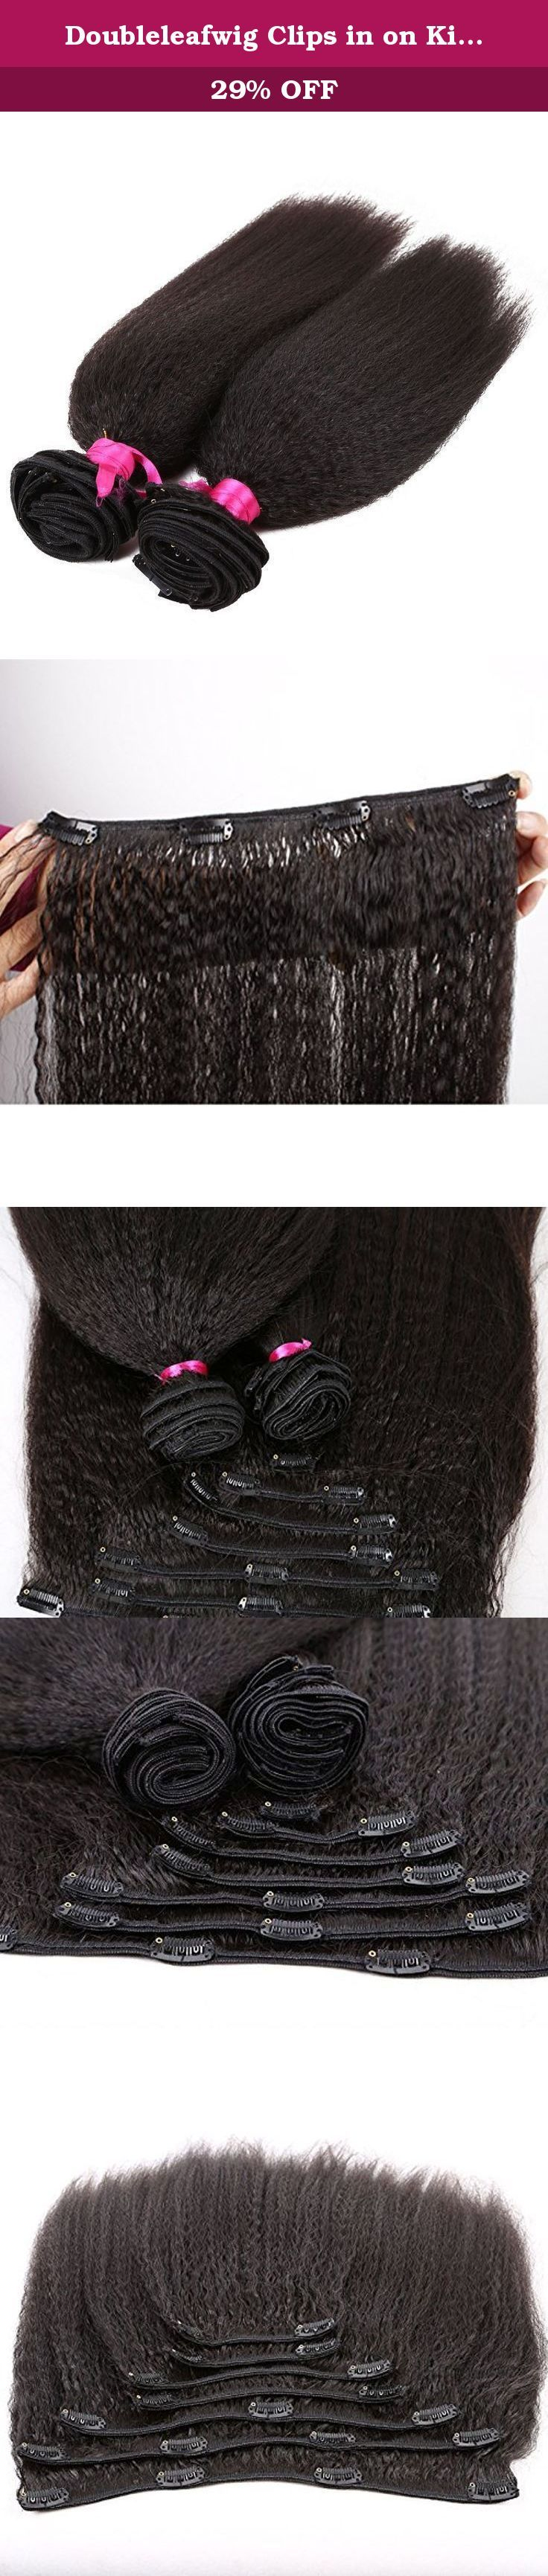 """Doubleleafwig Clips in on Kinky Straight Brazilian Virgin Remy Hair Weaves Unprocessed Natural Color Pack of 2 (14""""+16""""). Clips in All Machine Made Hair Weaves 7Pieces/Pack,2 Packs Styling For Full One Head Shown Hair Color:Unprocessed Natural Black Kinky Straight 109G-119G Each Set ."""